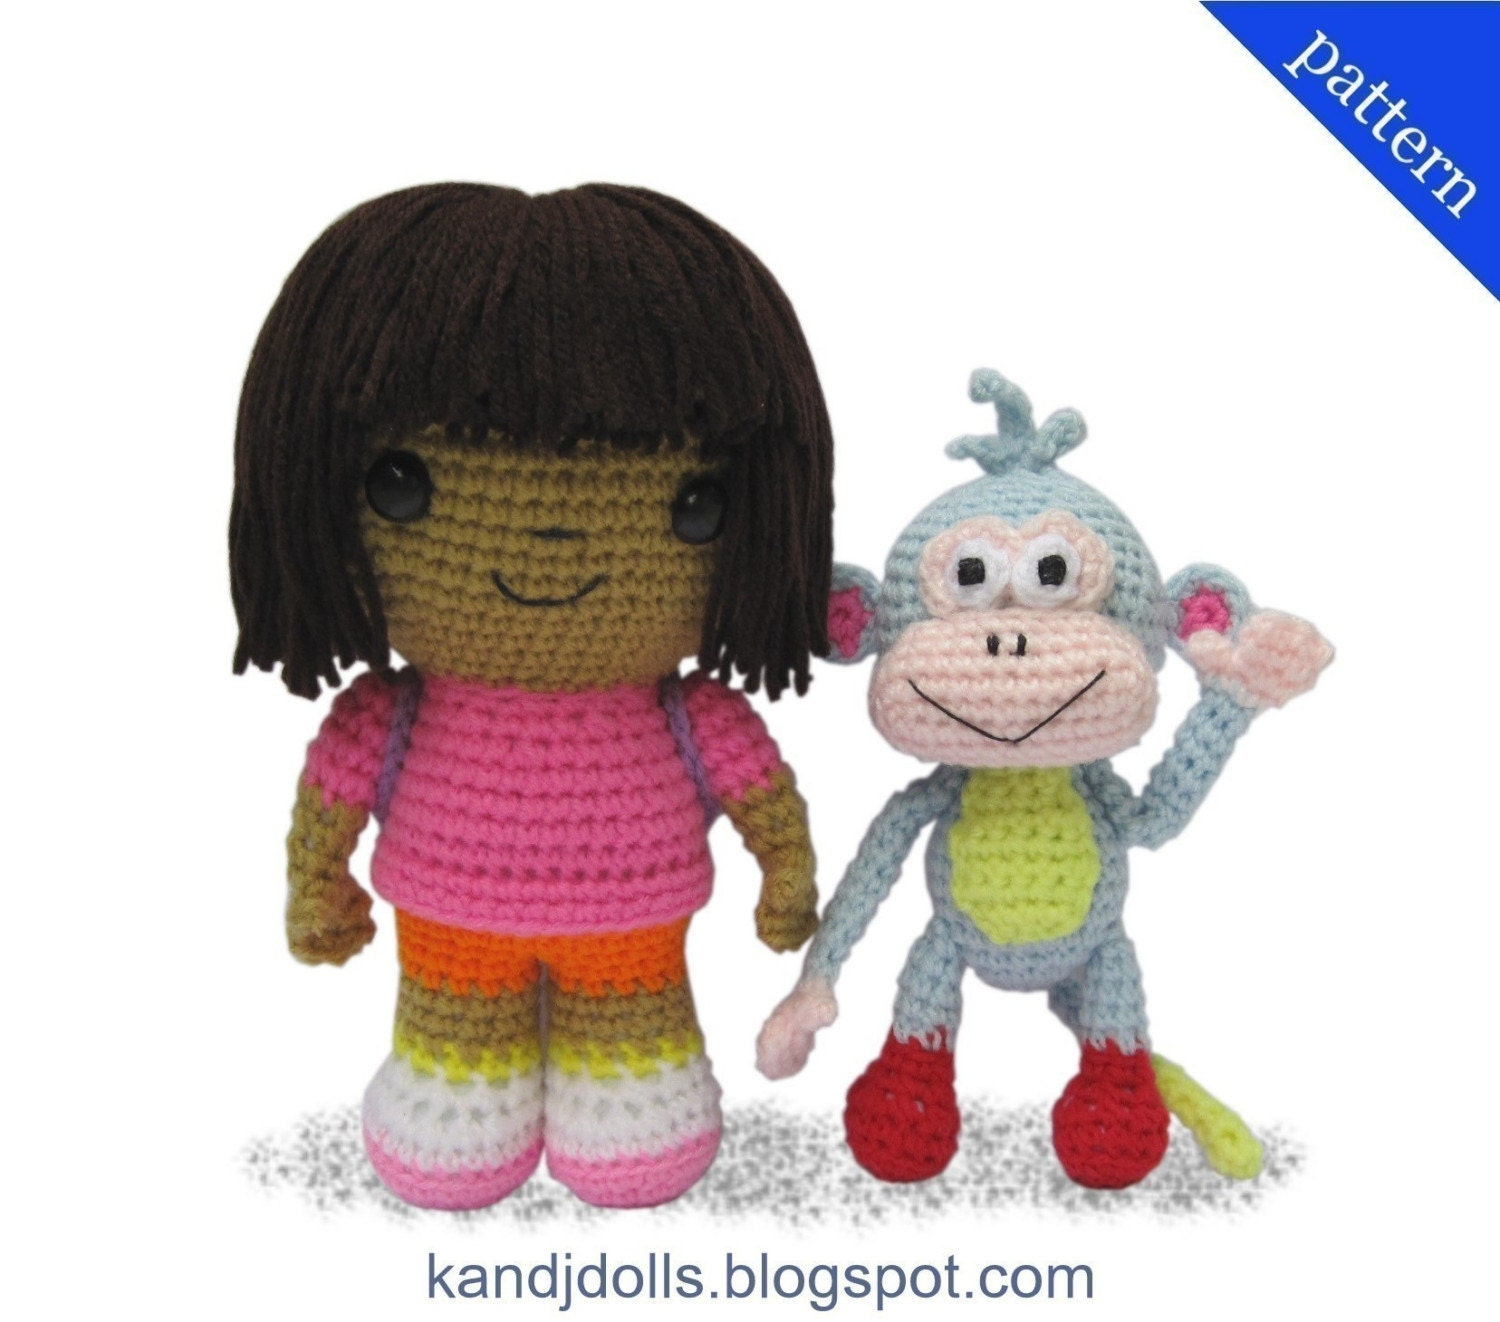 Knitting Pattern For Dora The Explorer Doll : Dora the Explorer and Boots 2 PDF Amigurumi crochet by kandjdolls